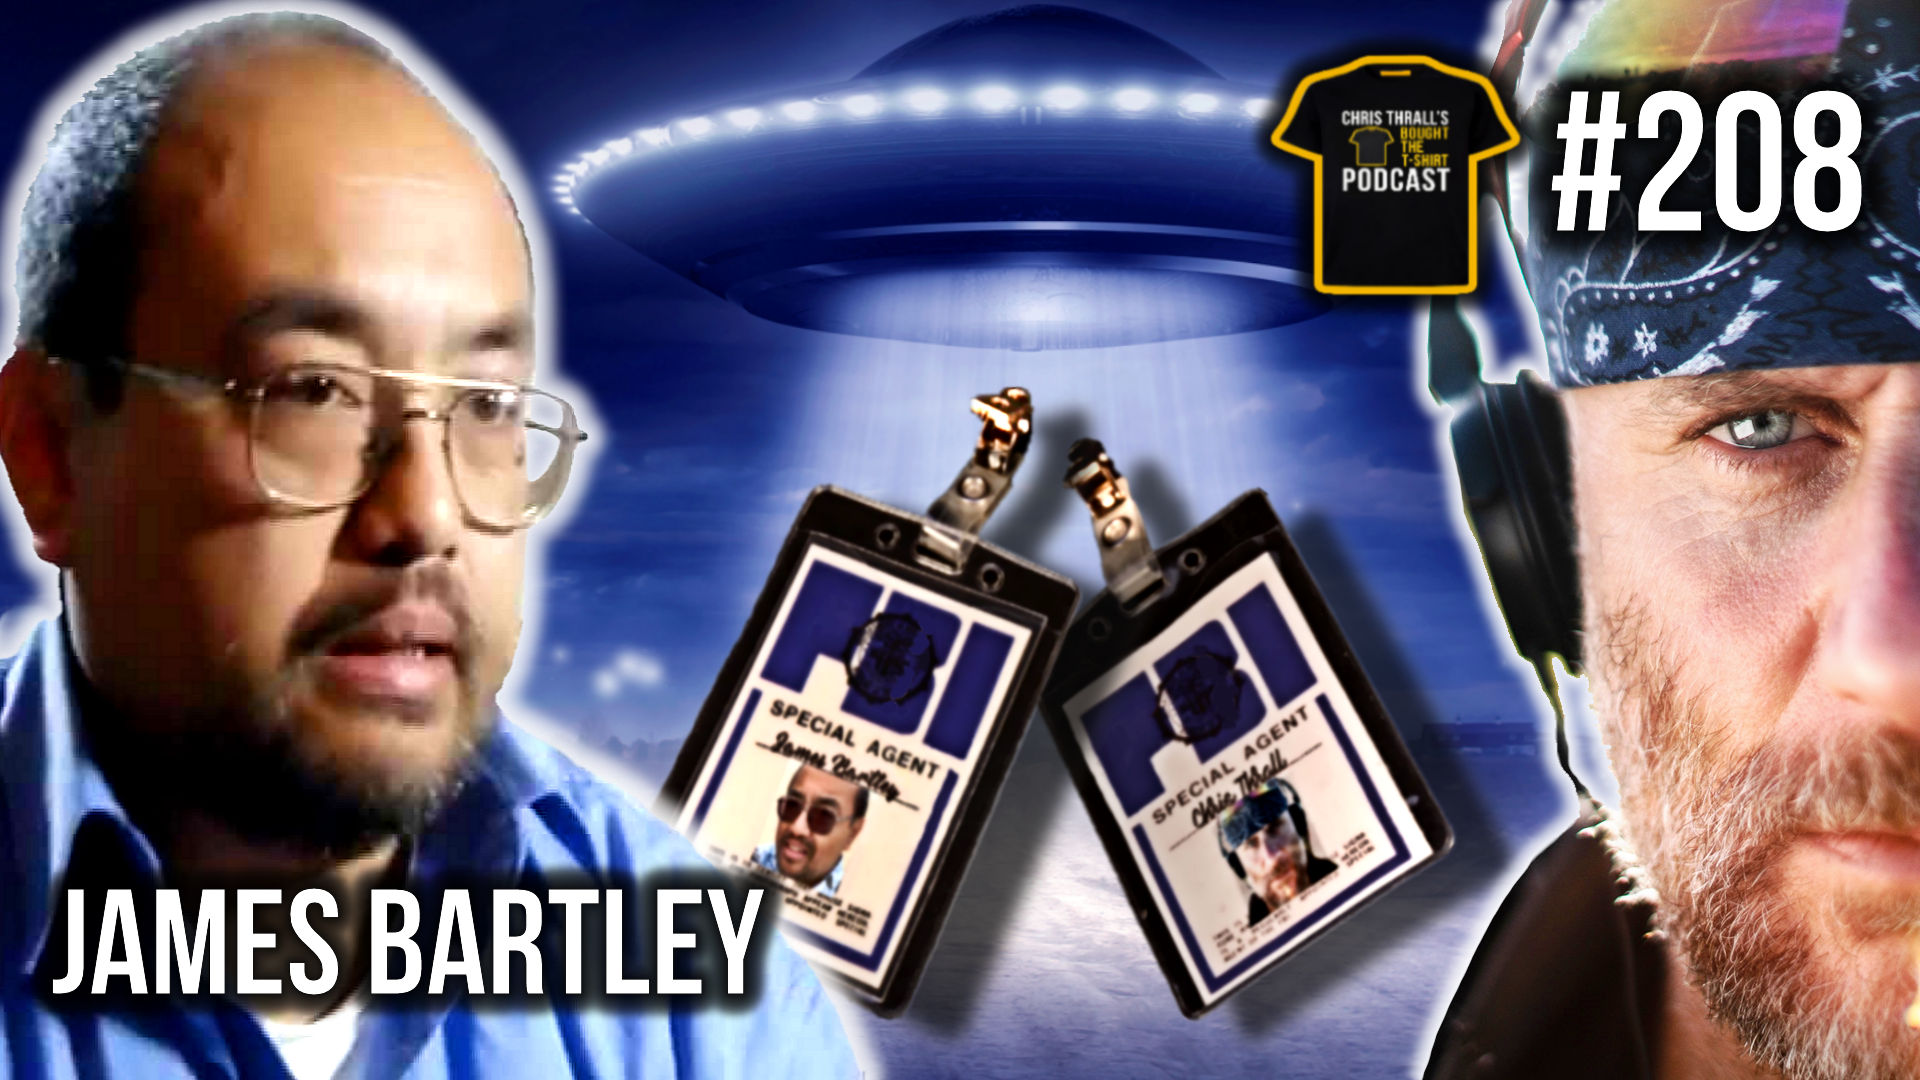 The Truth Is Out There | James Bartley | Podcast #208